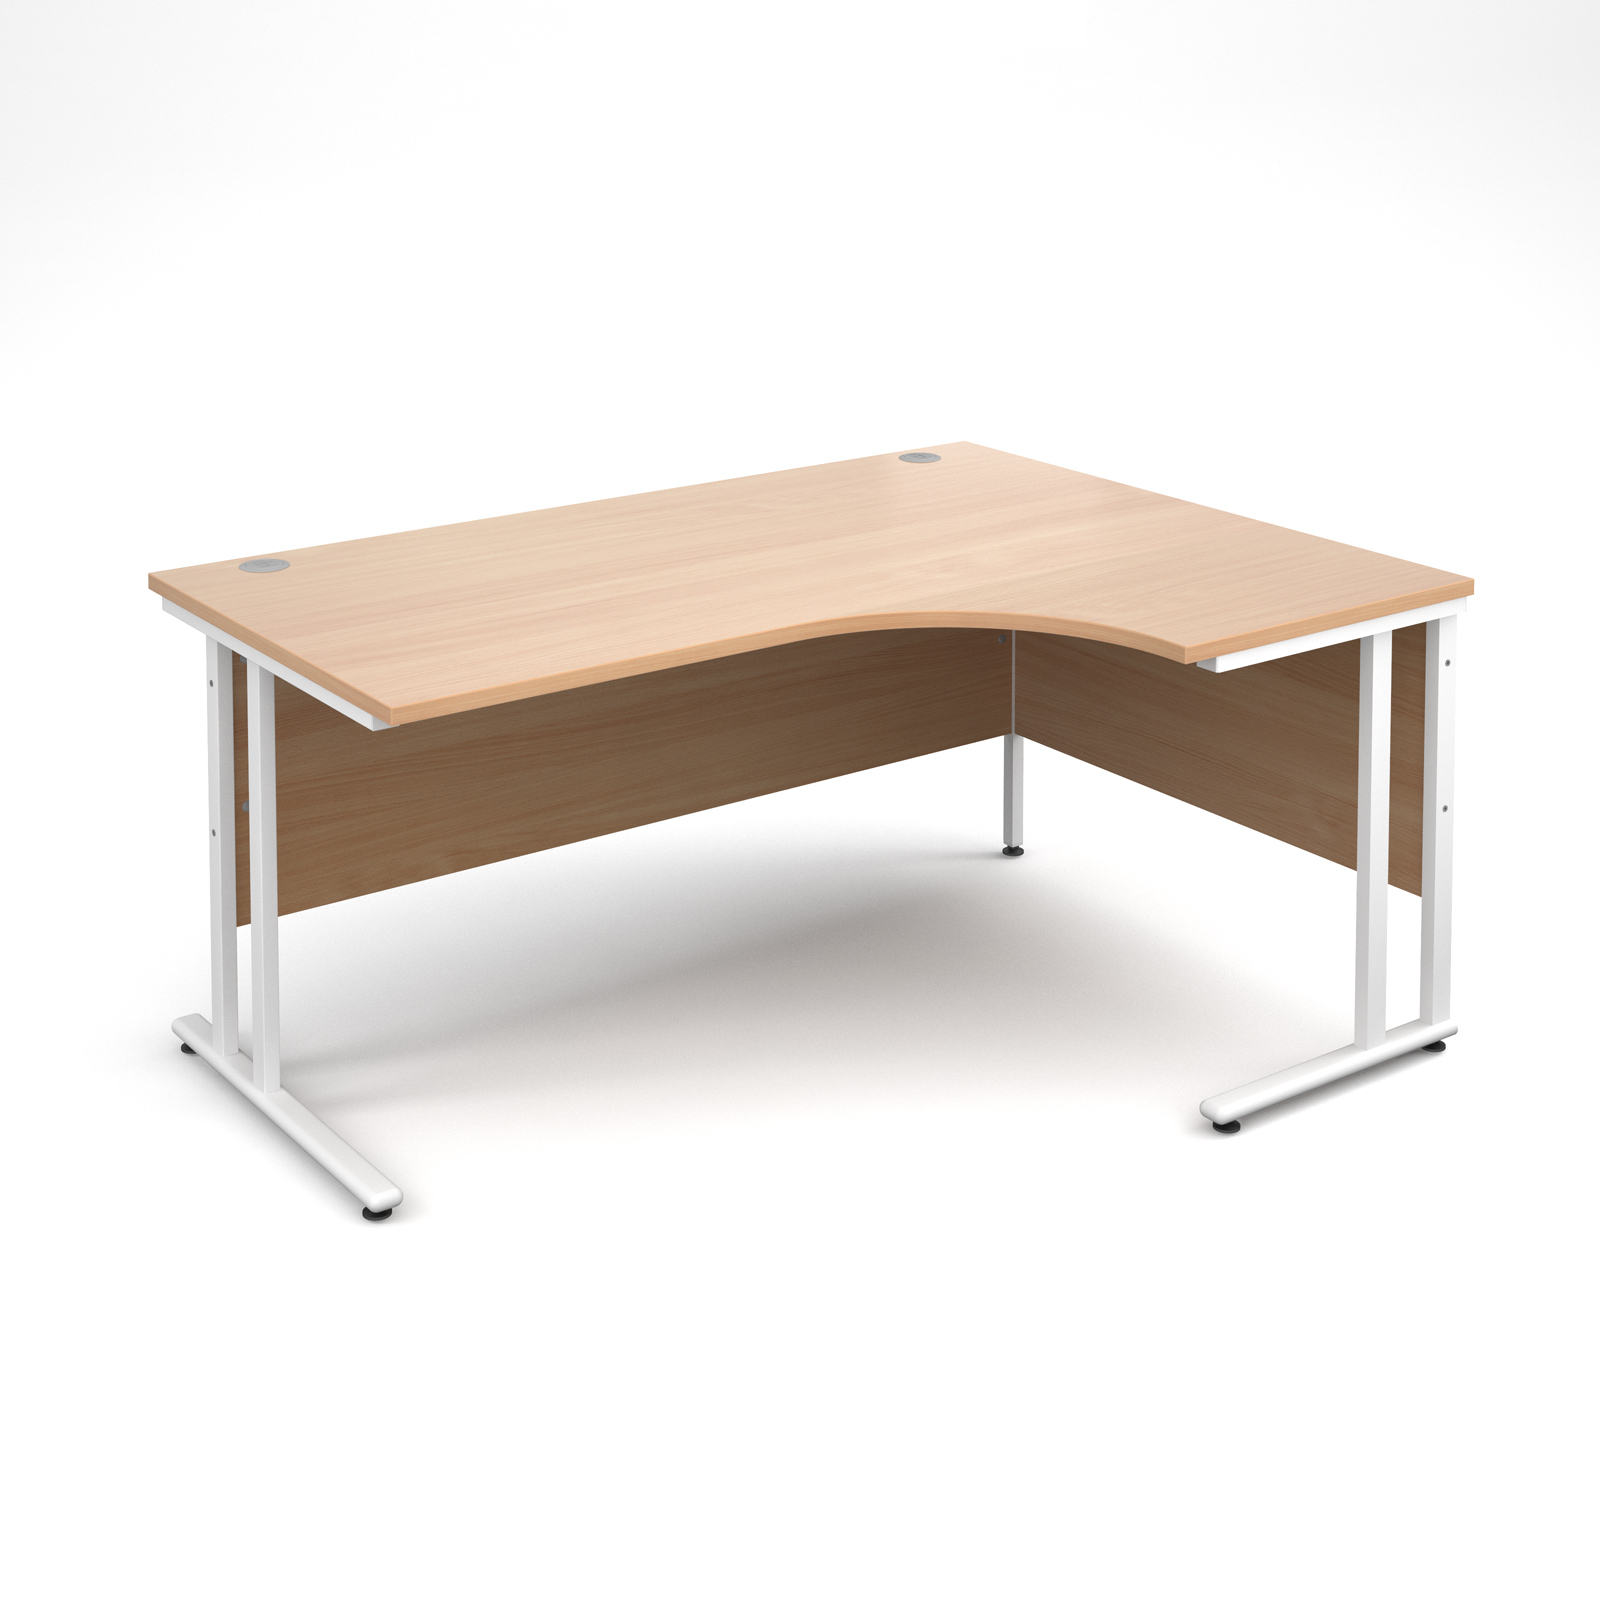 Maestro 25 WL right hand ergonomic desk 1600mm - white cantilever frame and beech top